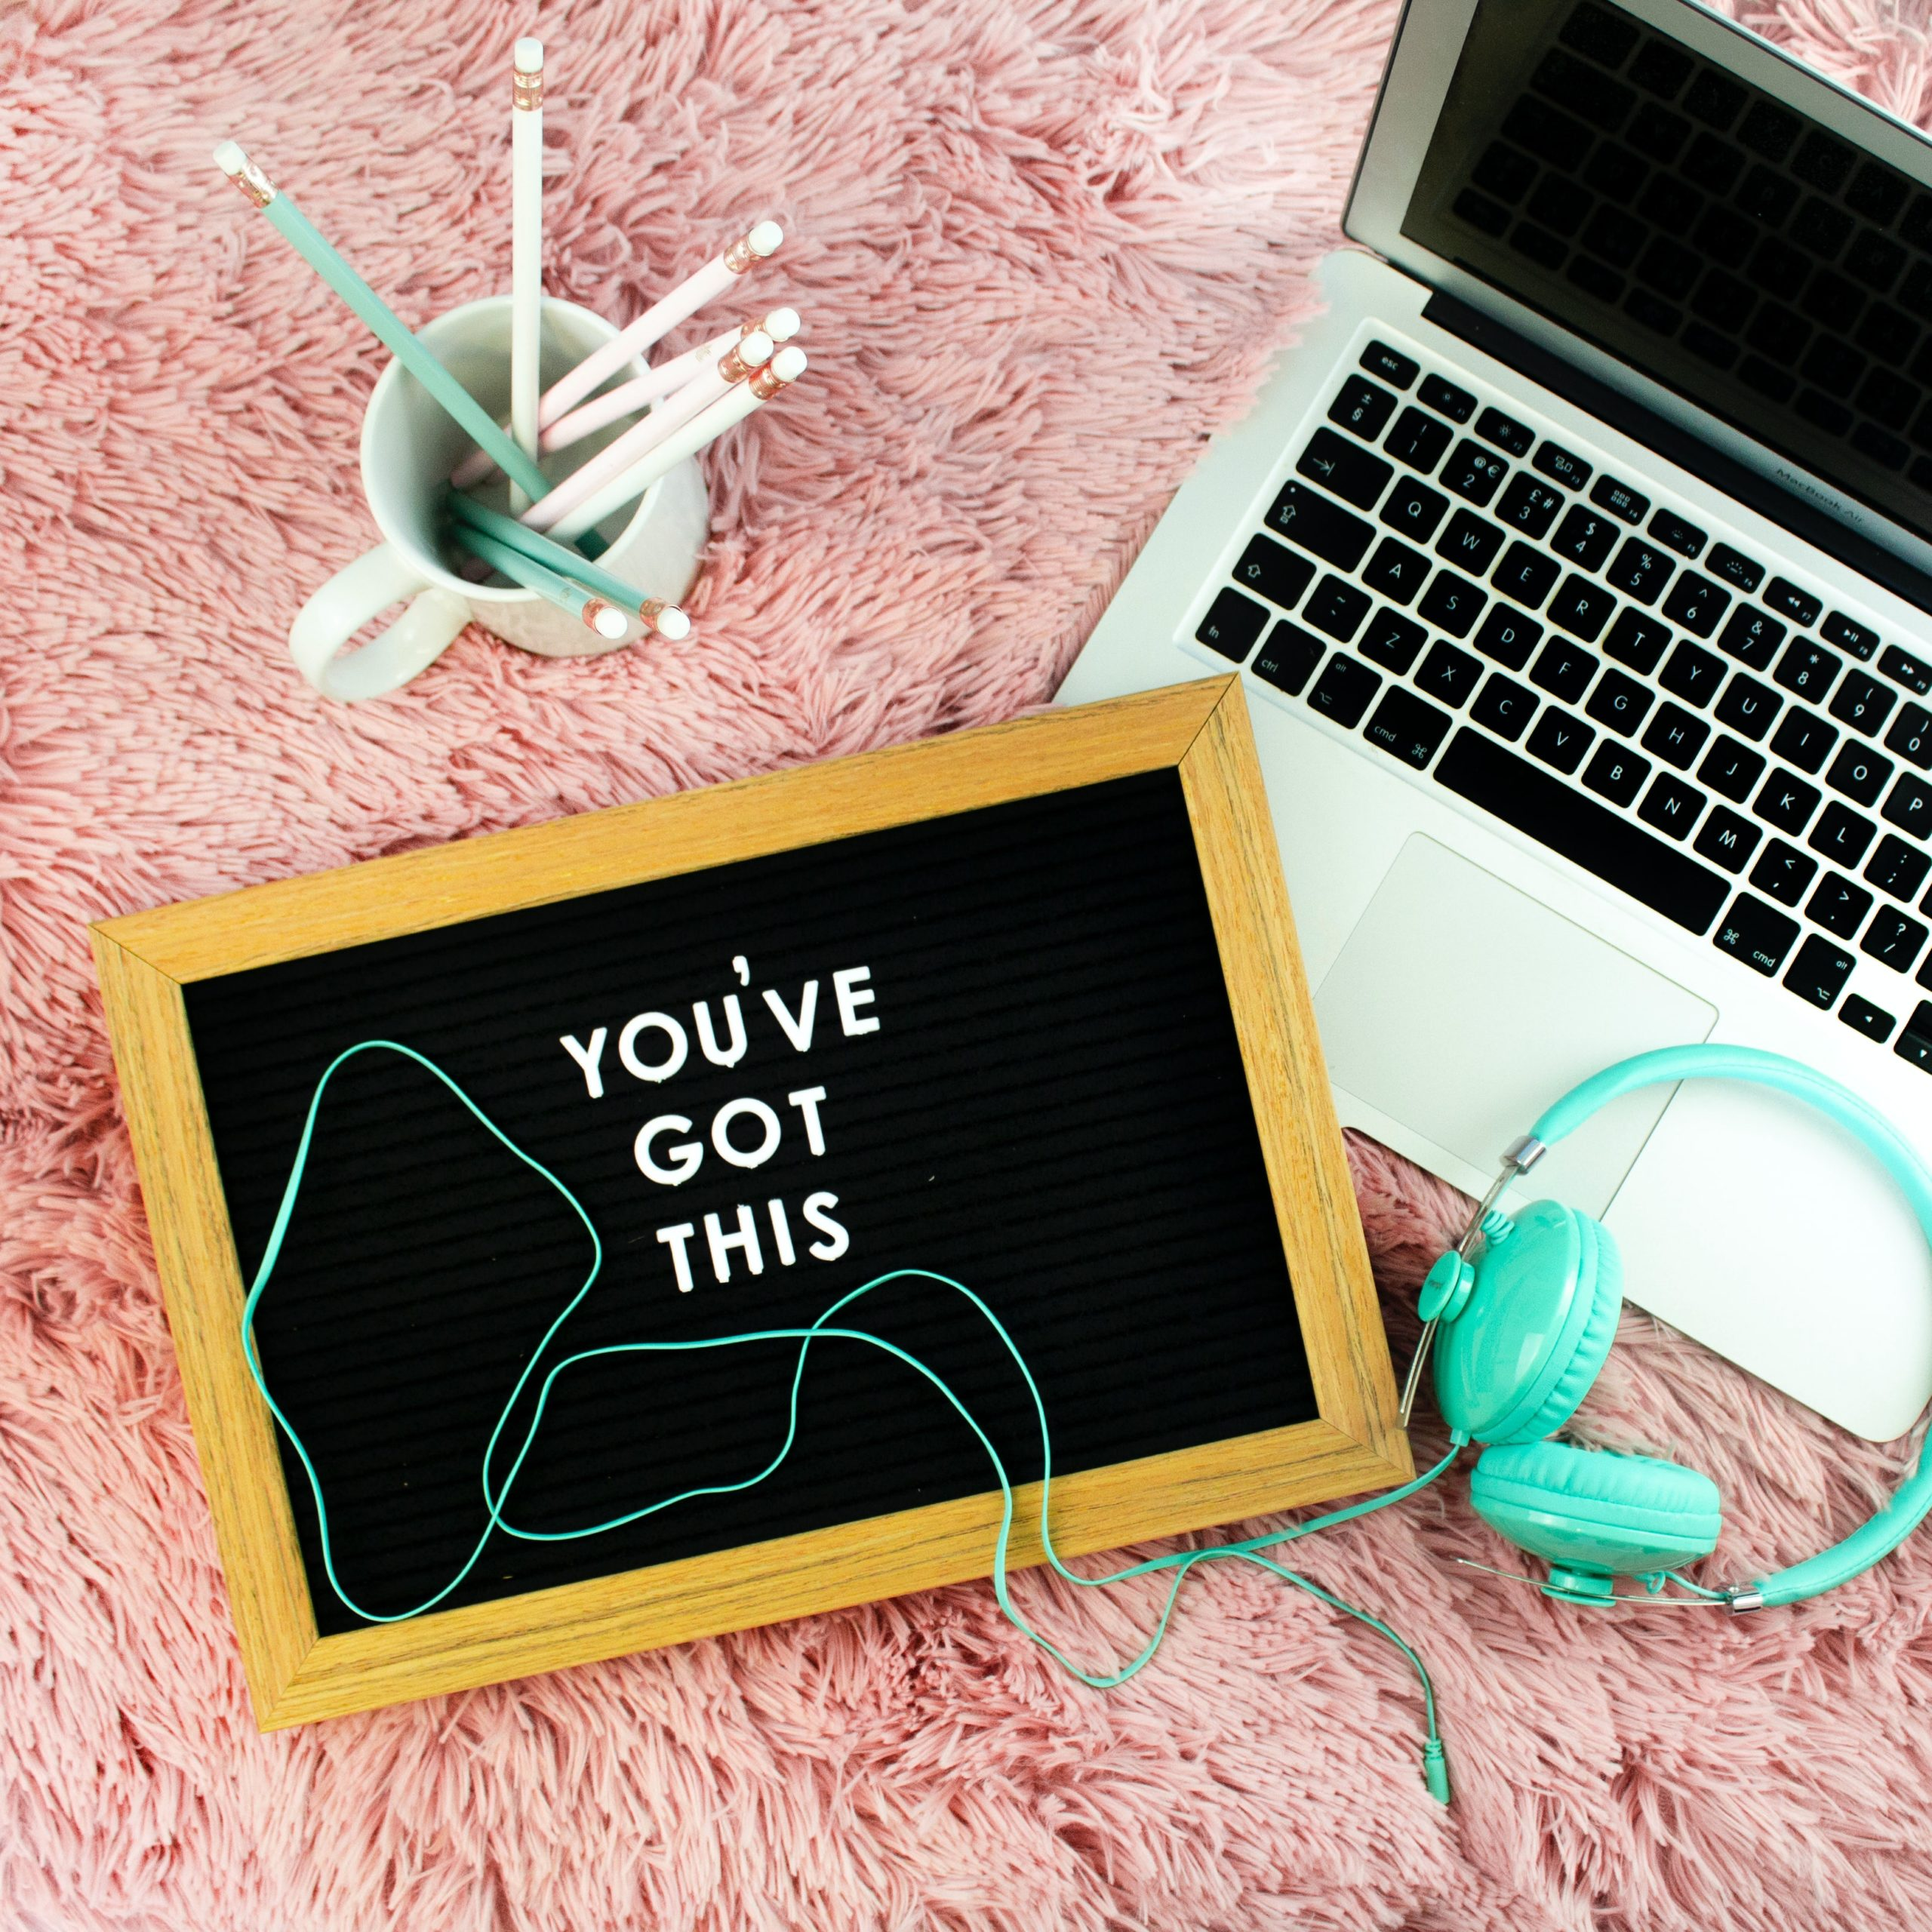 laptop with chalk board that says You've Got This